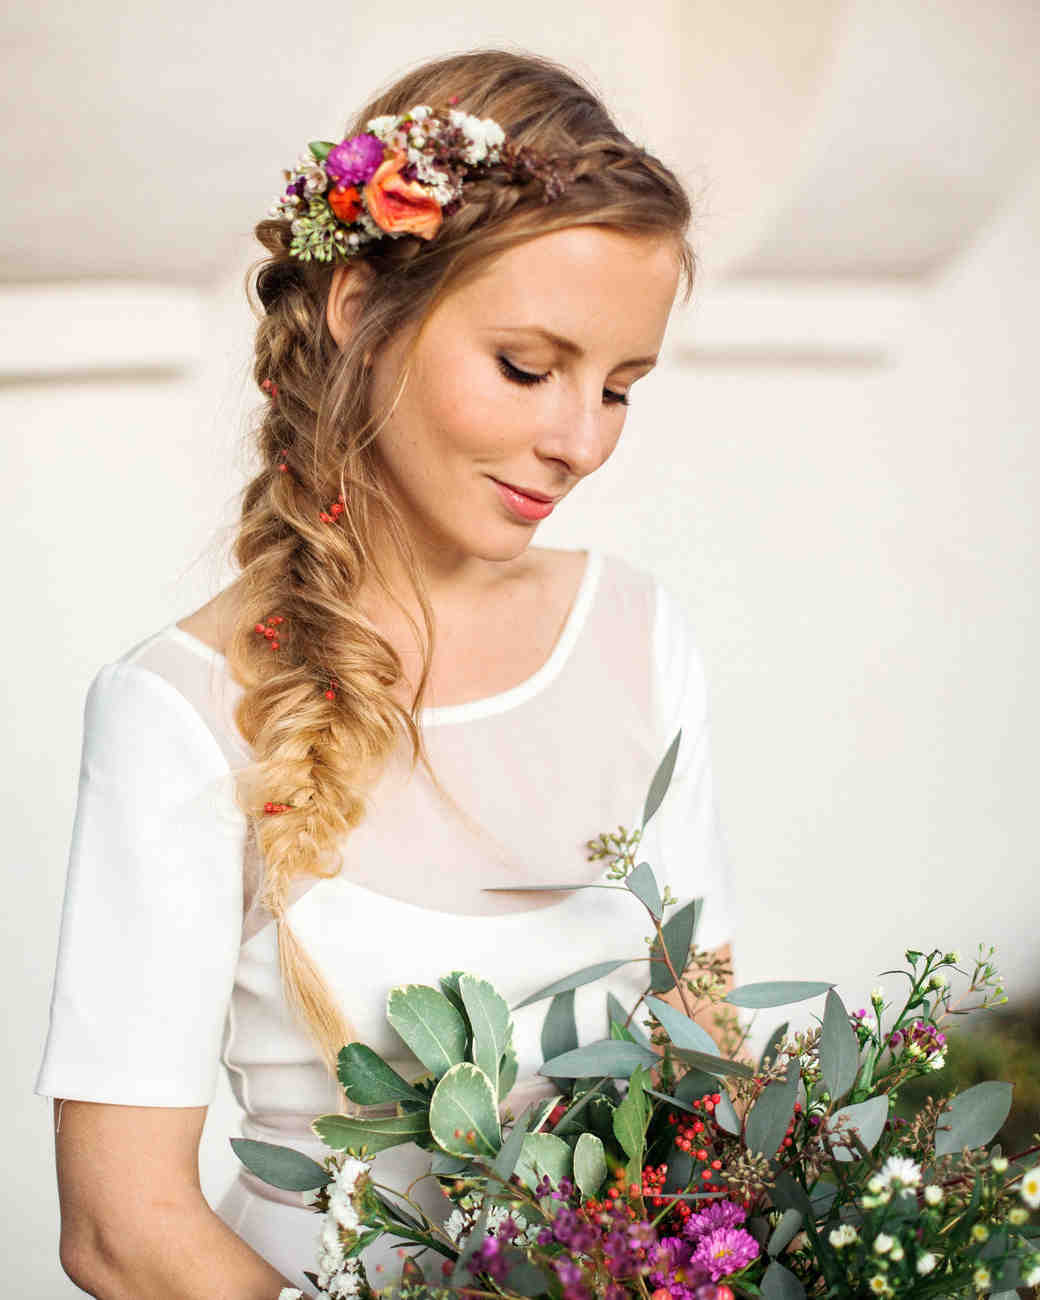 Wedding Hairstyle With Braids: Boho-Chic Wedding Ideas For Free-Spirited Brides And